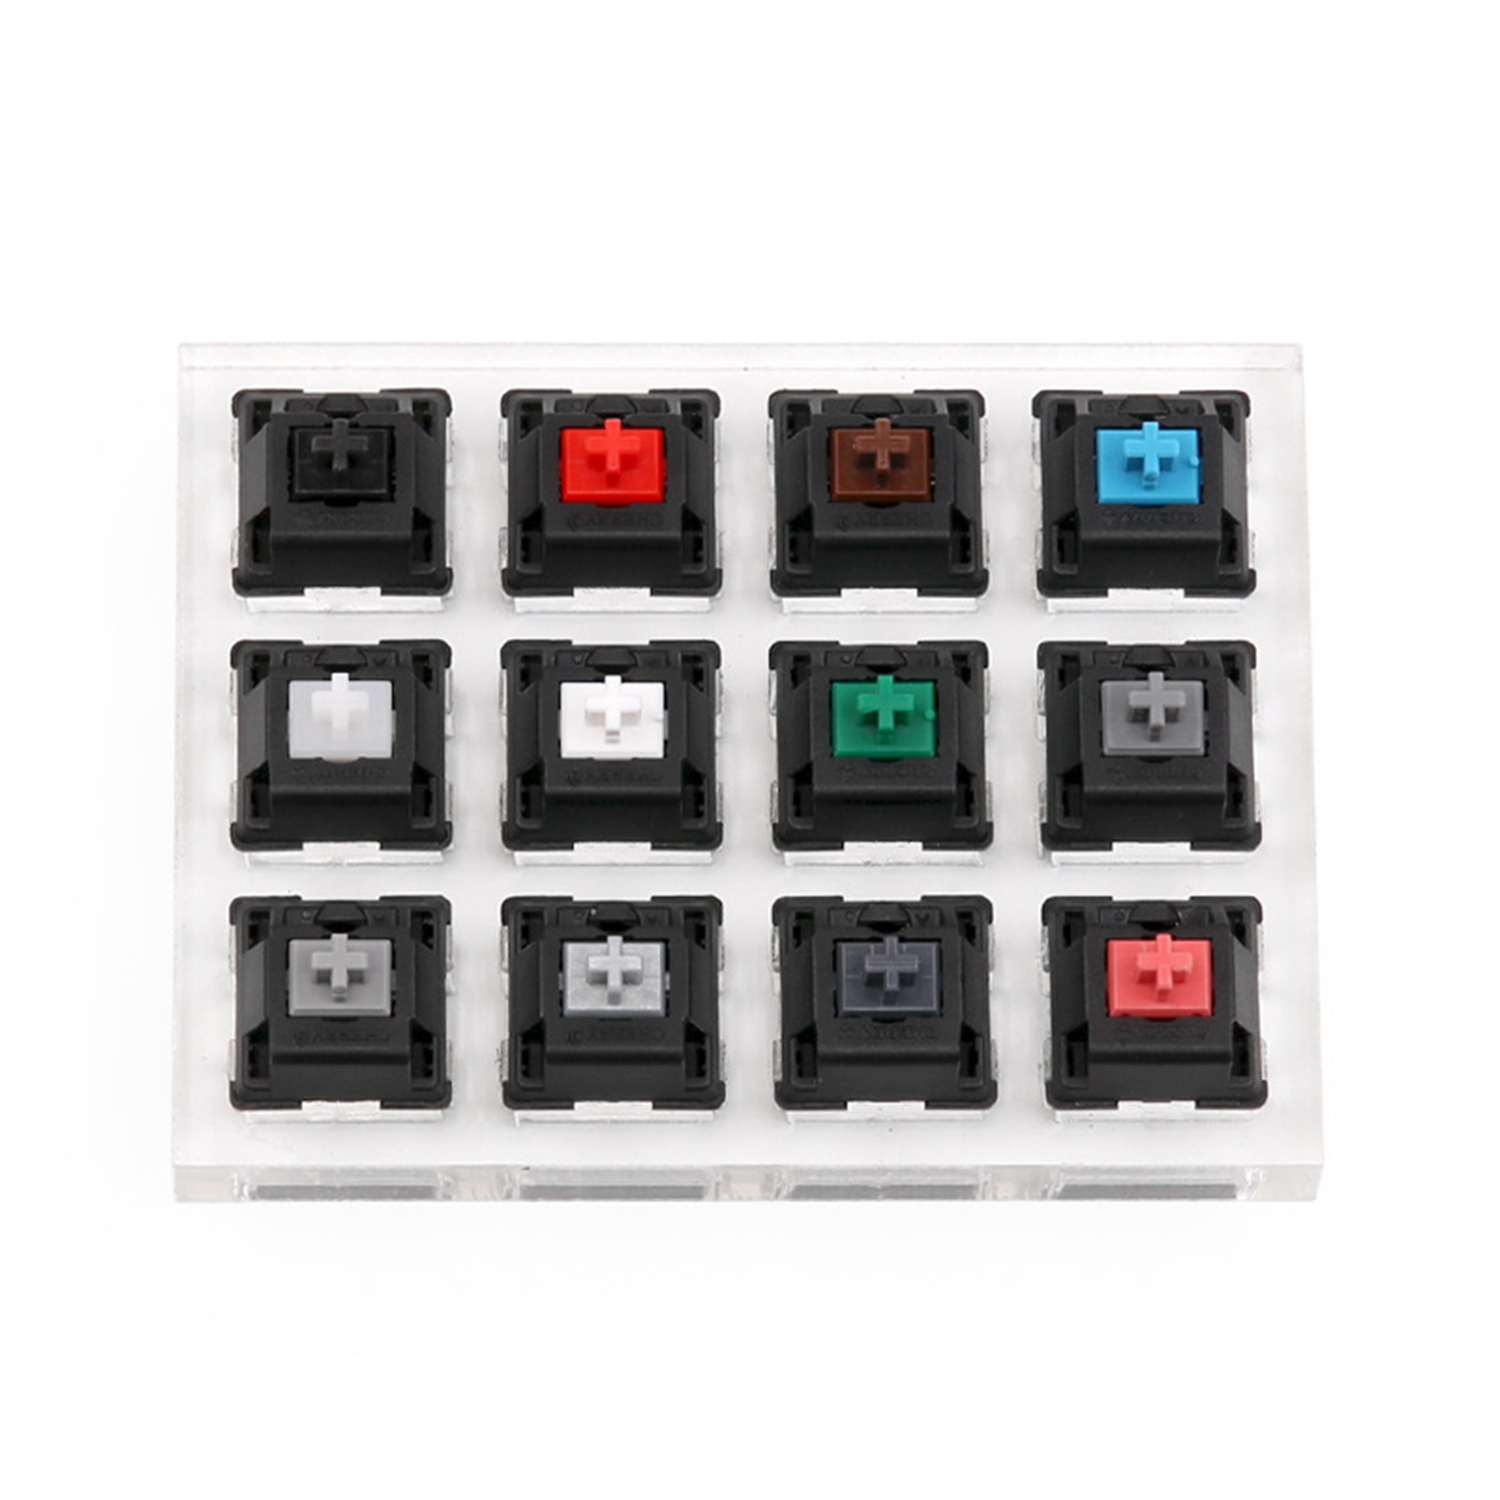 Acrylic Keyboard Tester Plastic Keycap Sampler For Cherry MX Switches